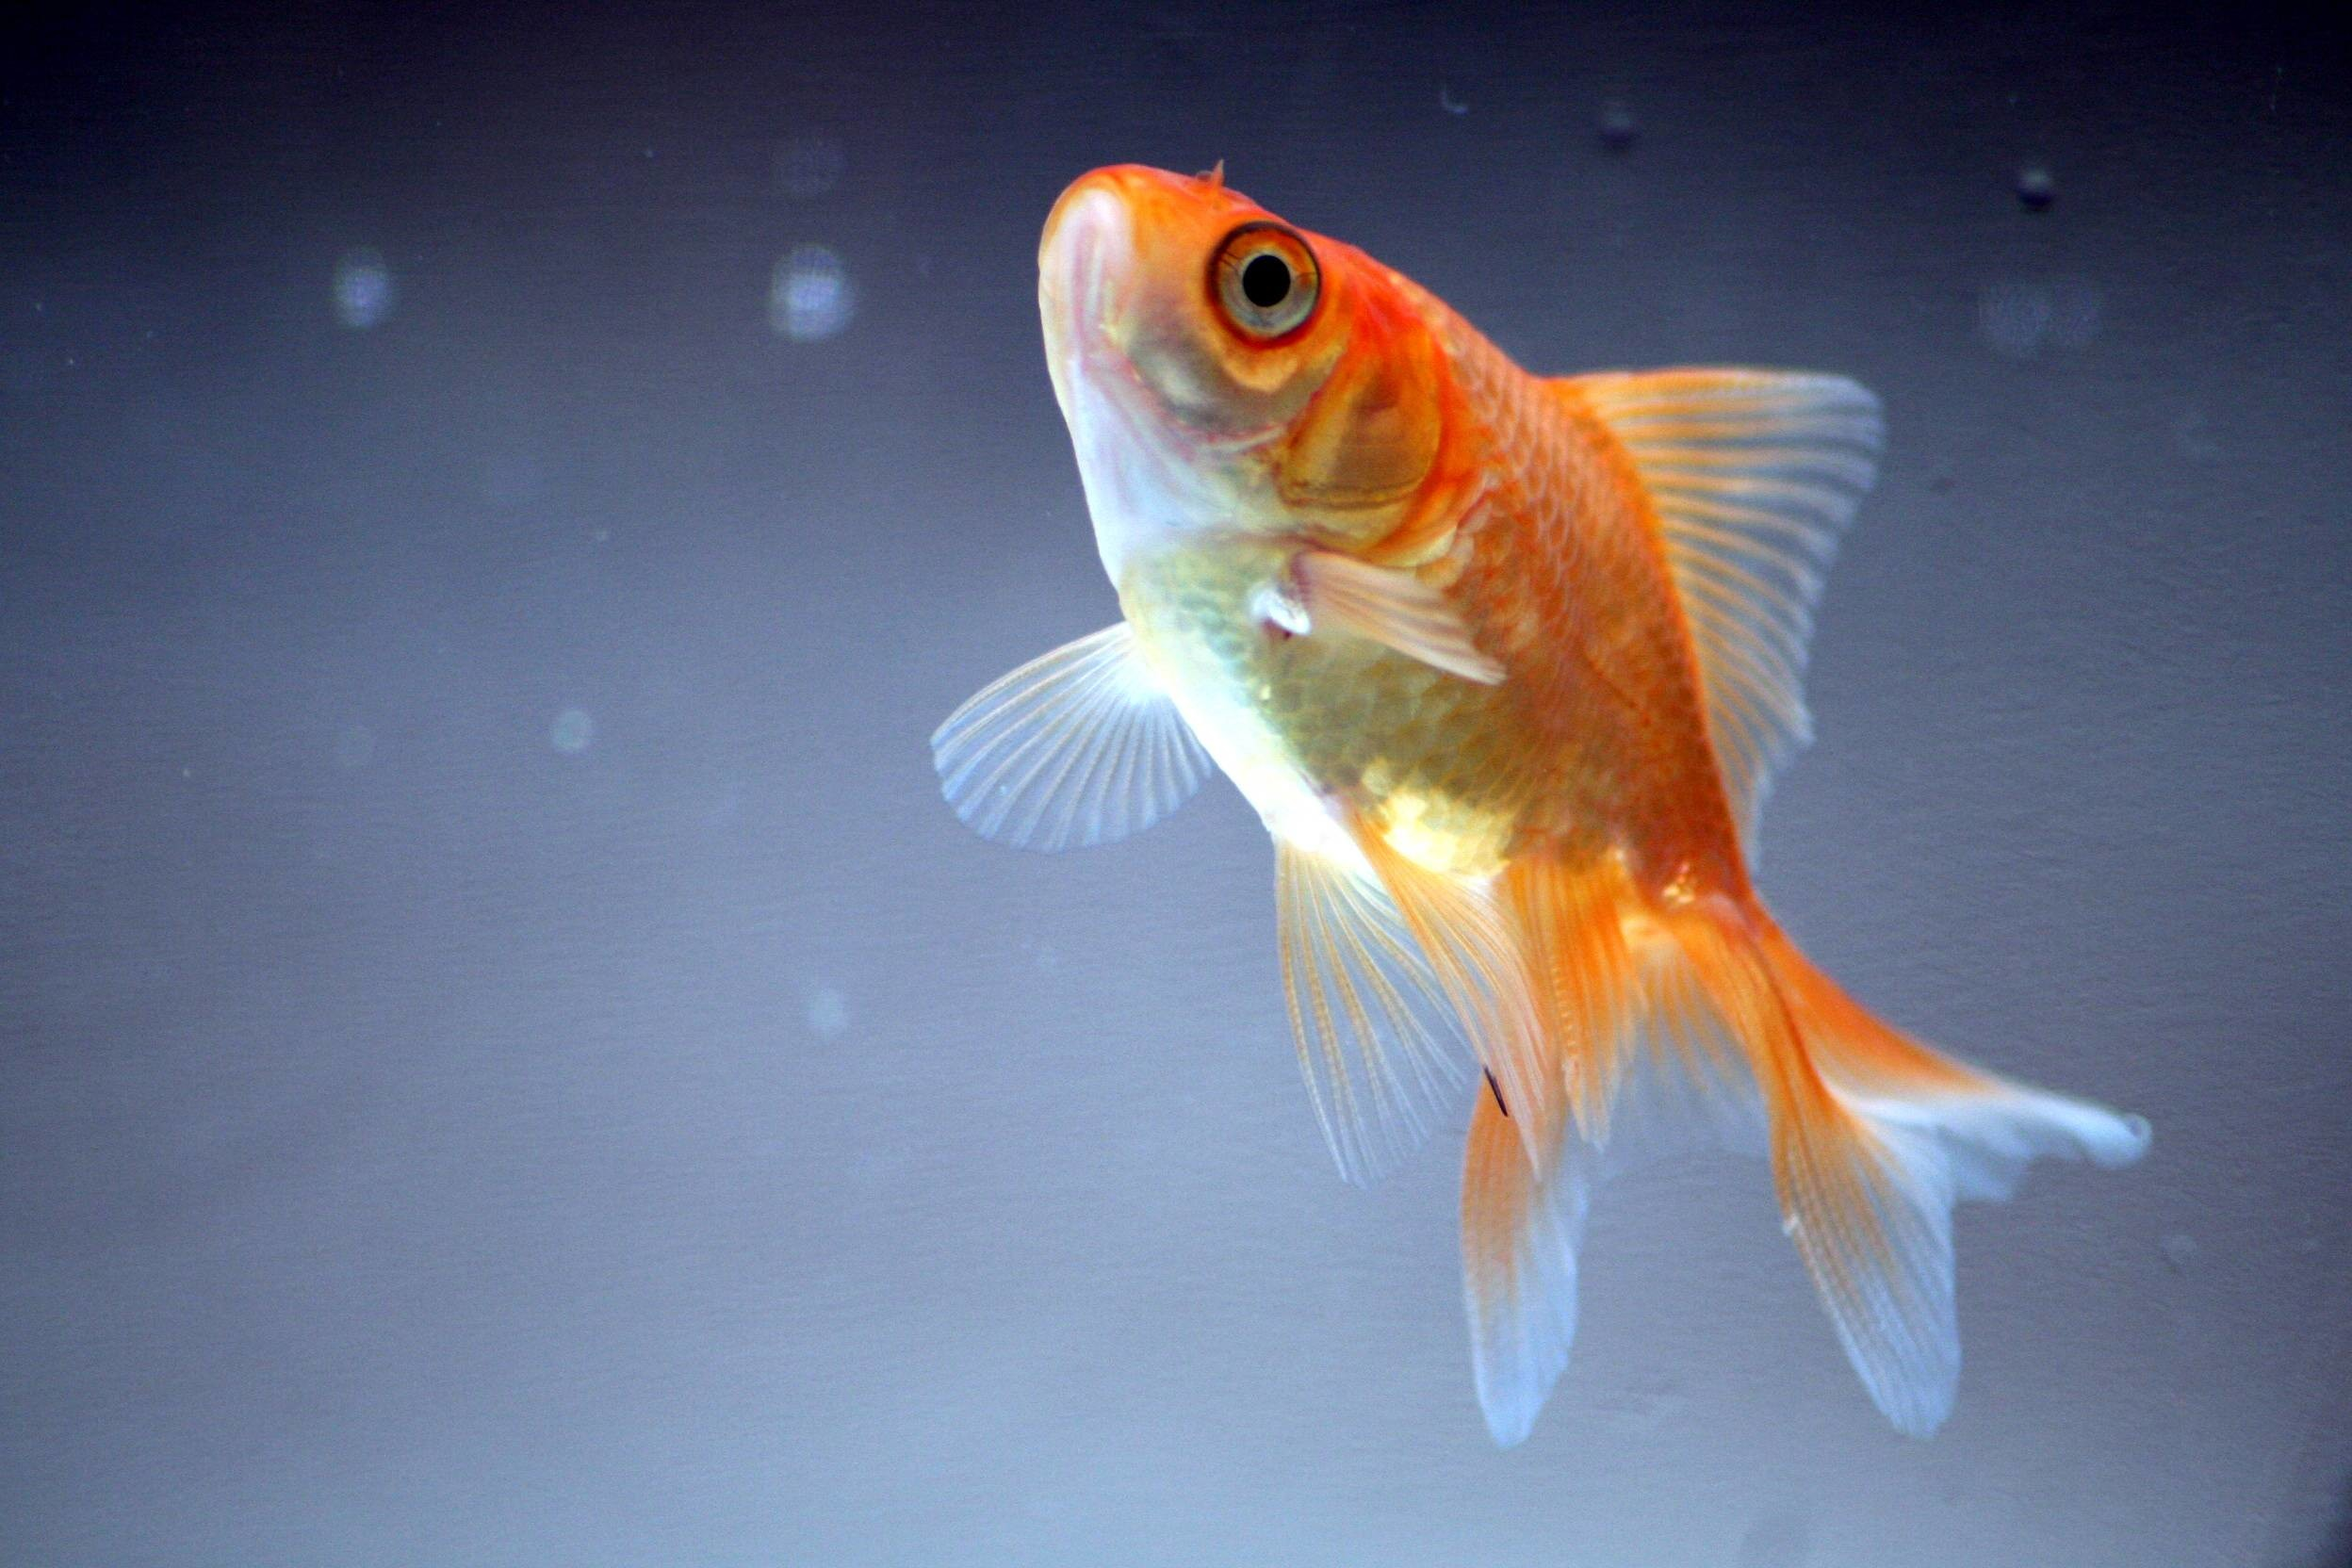 Res: 2496x1664, Wallpapers For > Goldfish Wallpaper For Desktop